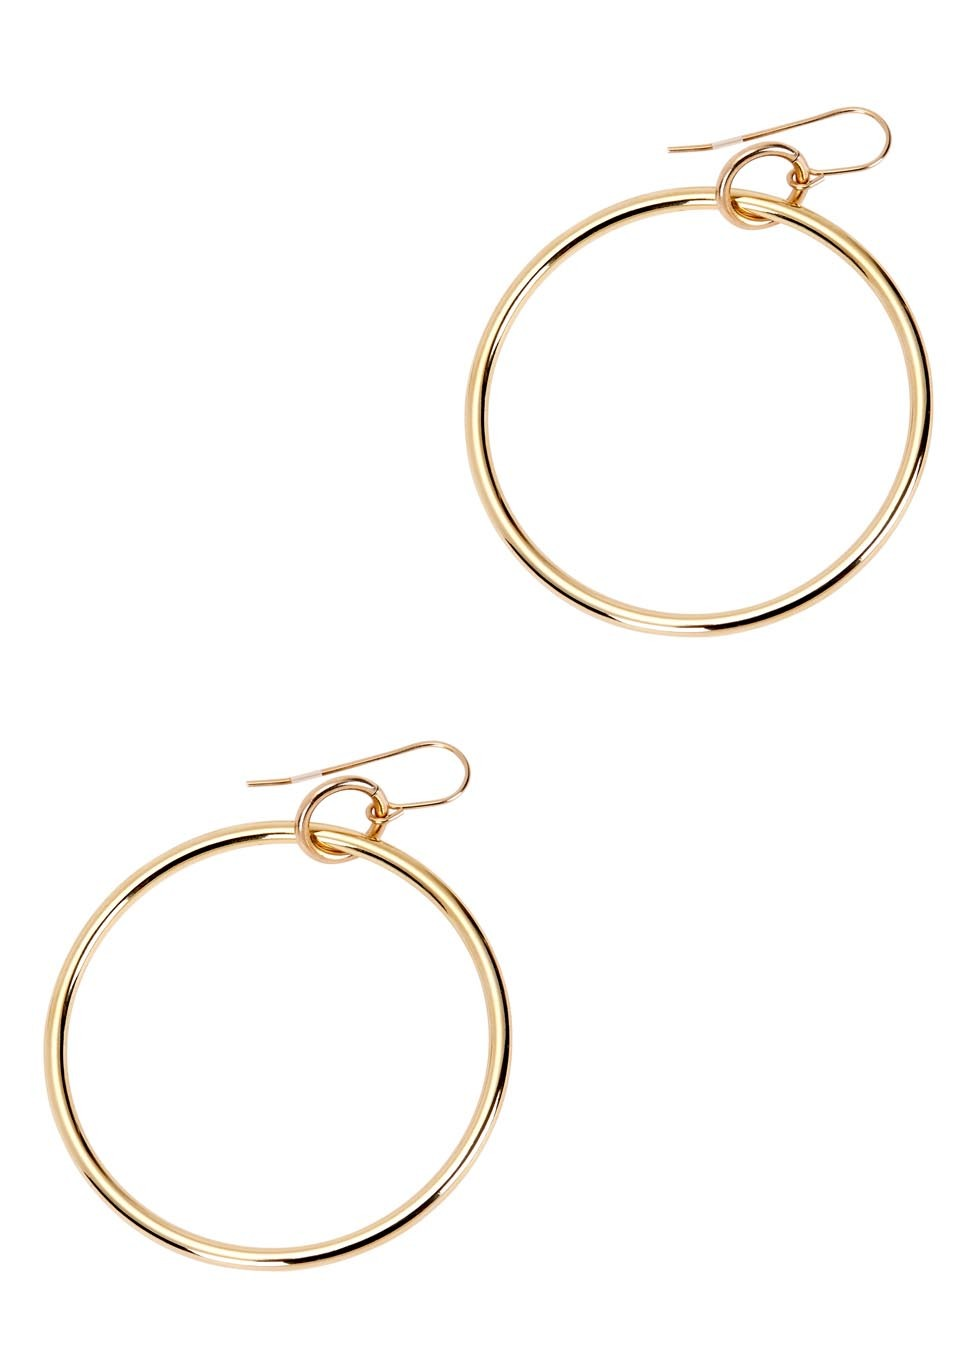 Lueur 24kt Gold Plated Hoop Earrings - predominant colour: gold; occasions: casual, work, creative work; style: hoop; length: mid; size: standard; material: chain/metal; fastening: pierced; finish: metallic; embellishment: chain/metal; season: s/s 2016; wardrobe: basic